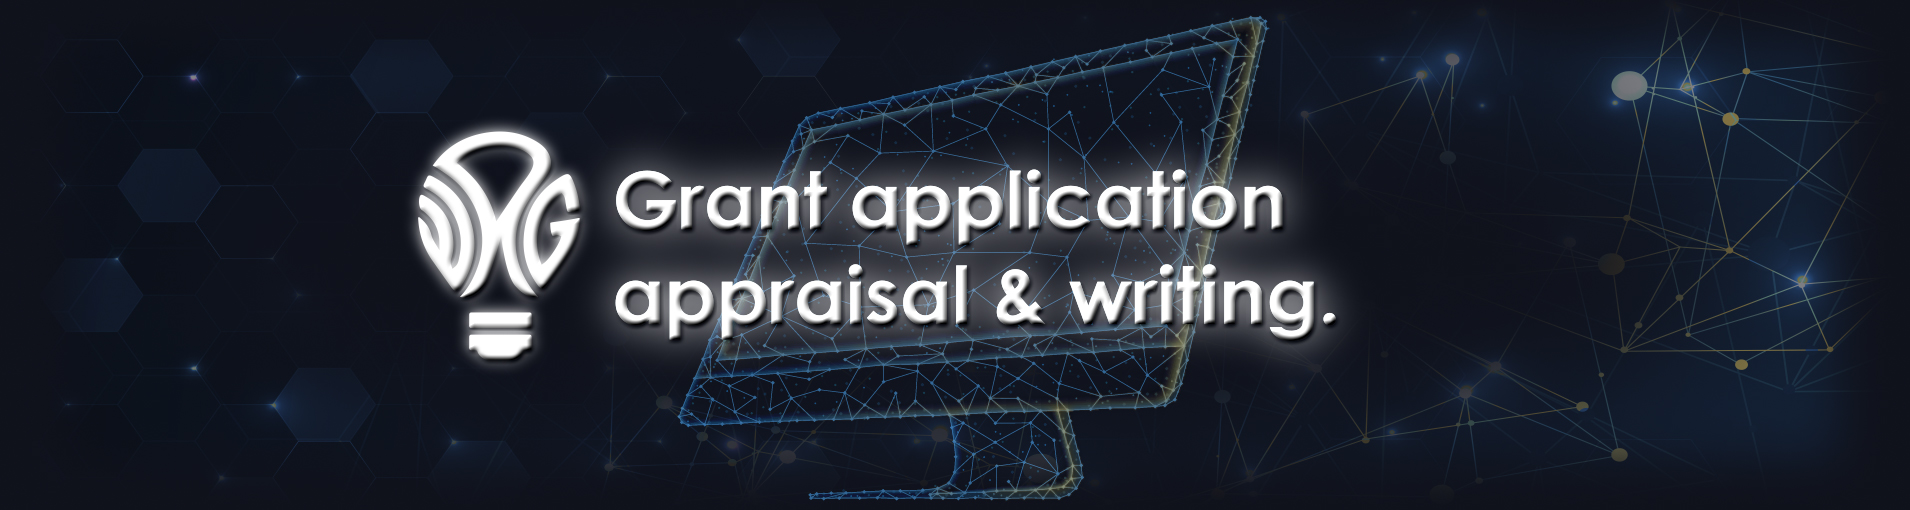 Grant Writing and Application Appraisal